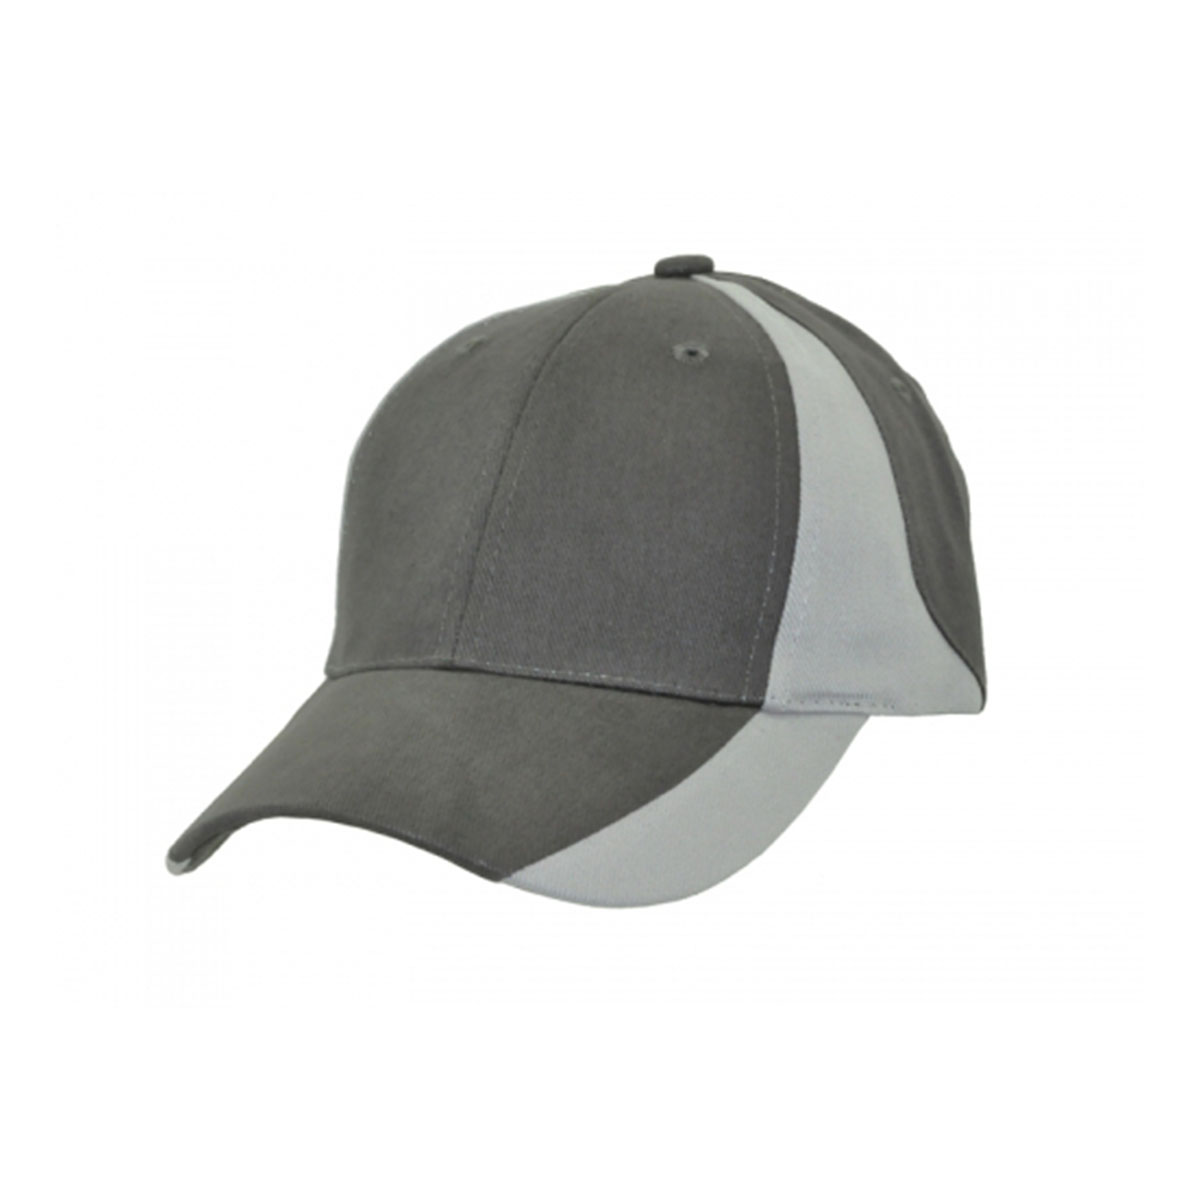 Vertek Cap-Dark Charcoal / Dark Grey